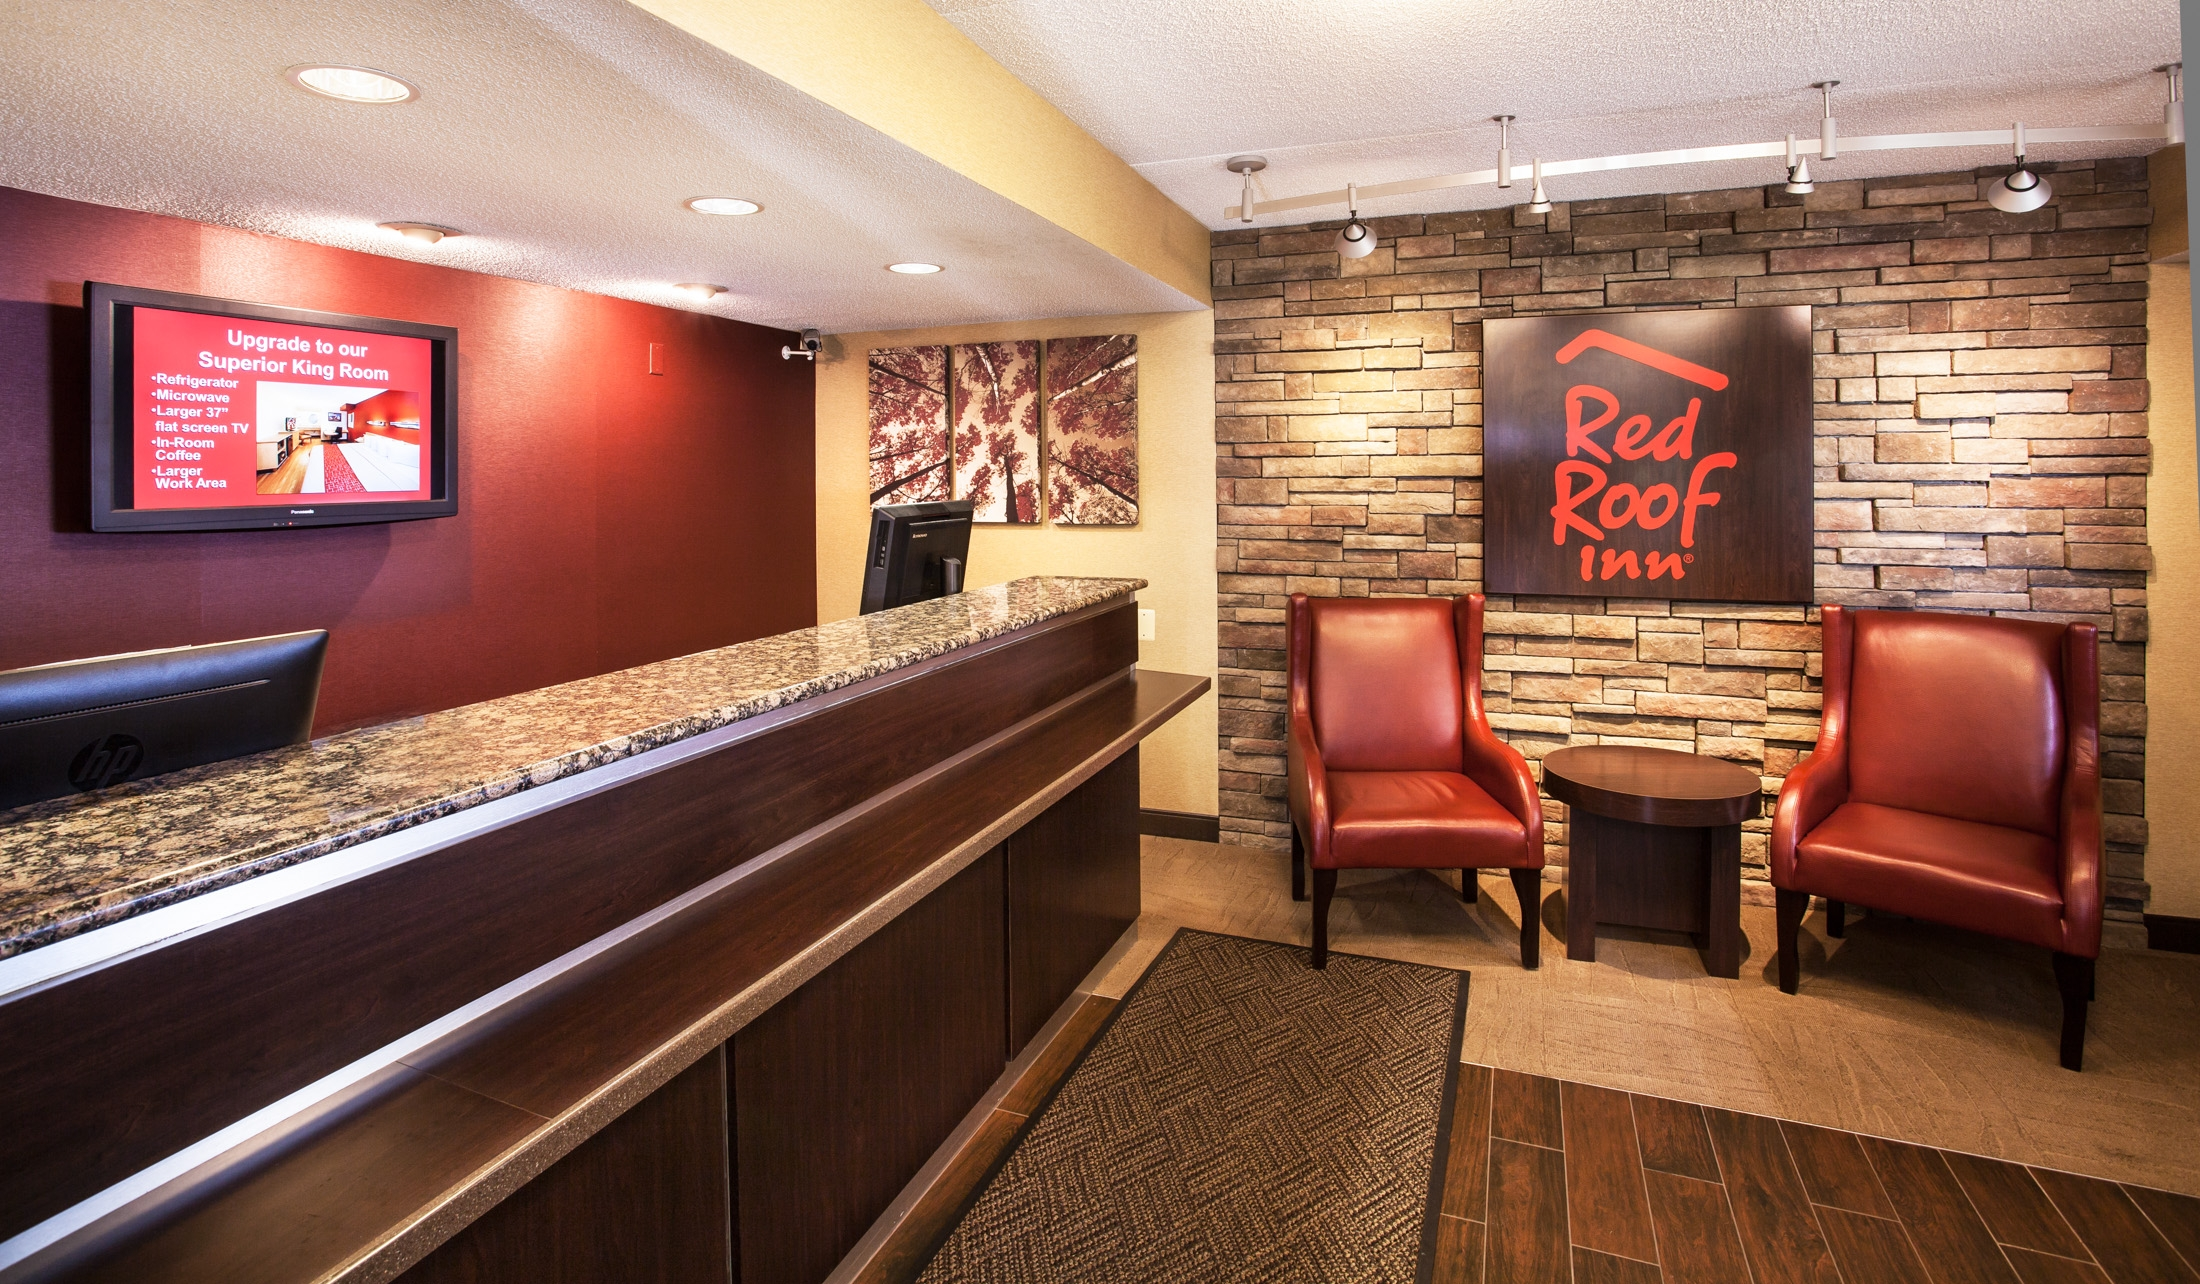 Red Roof Inn Military Promotion 5 Winter Hot Spots For